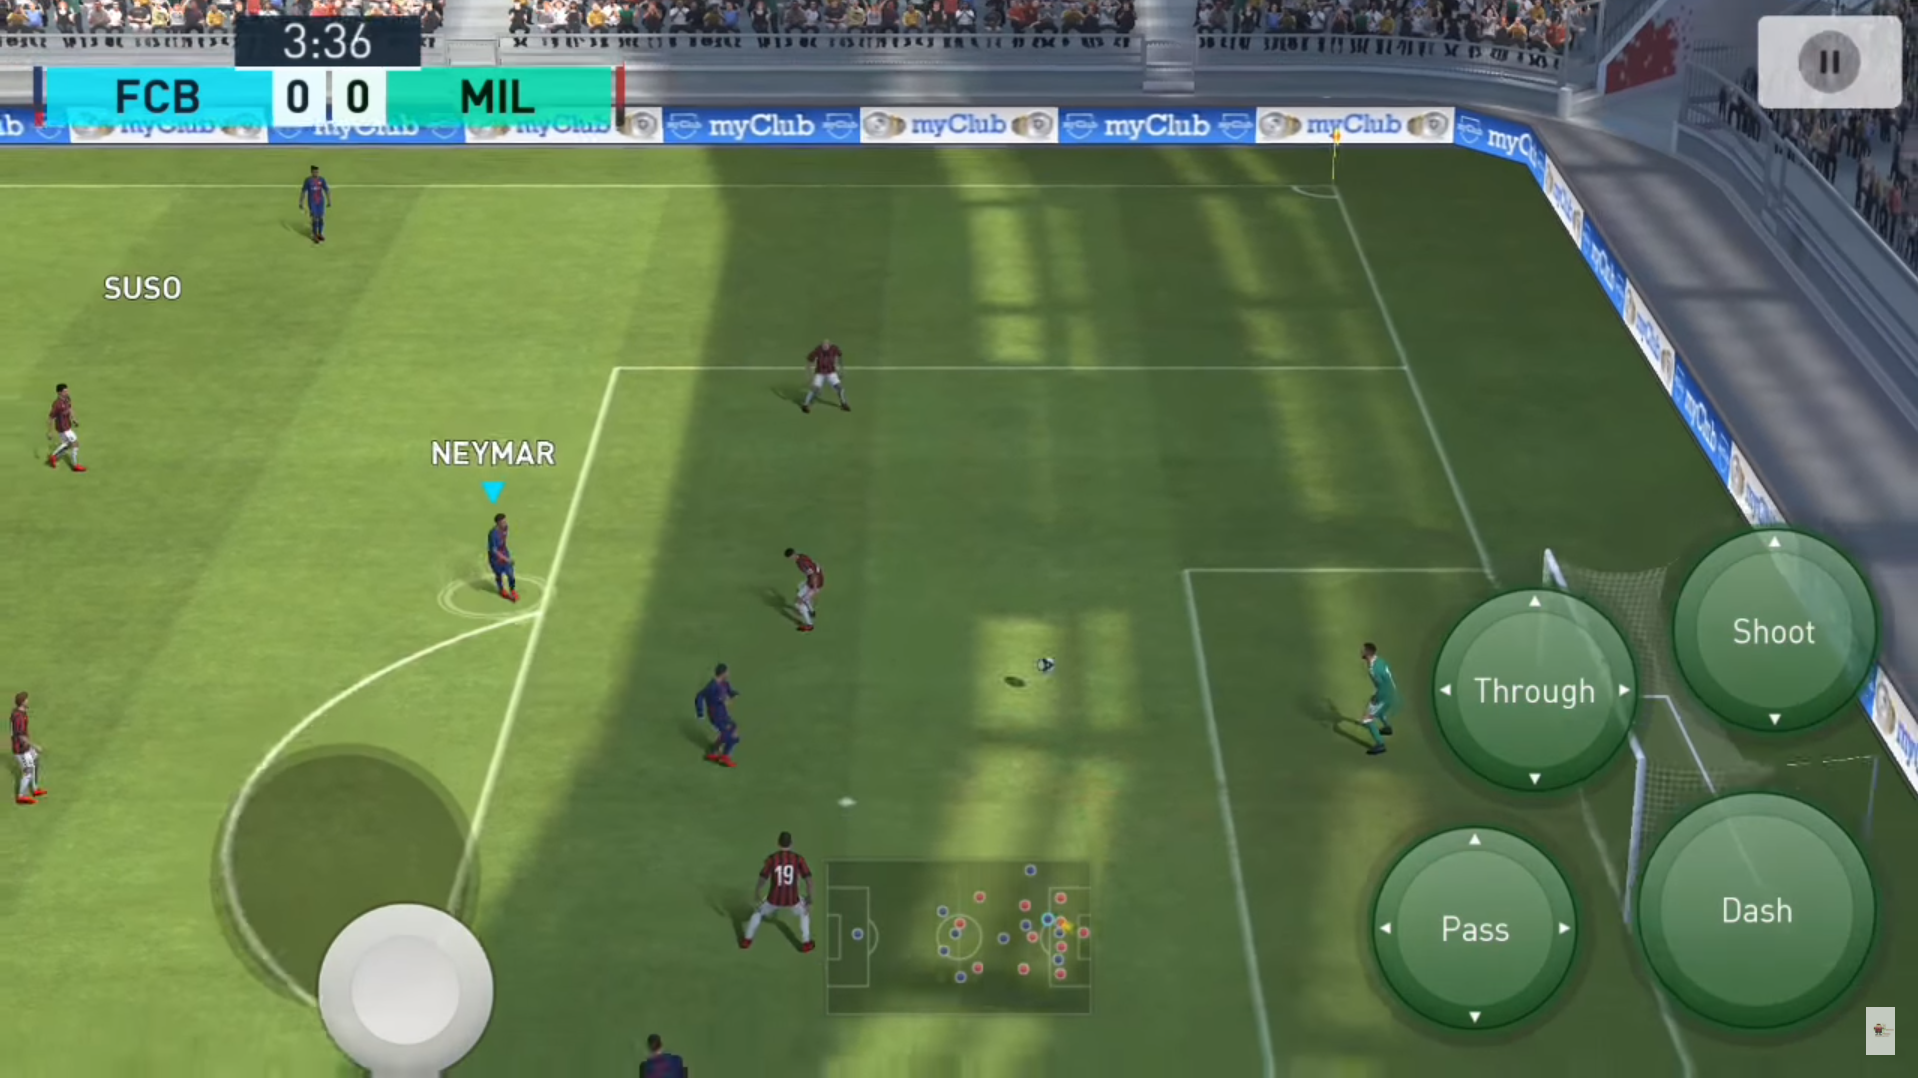 Telecharger football manager 2019 android gratuit